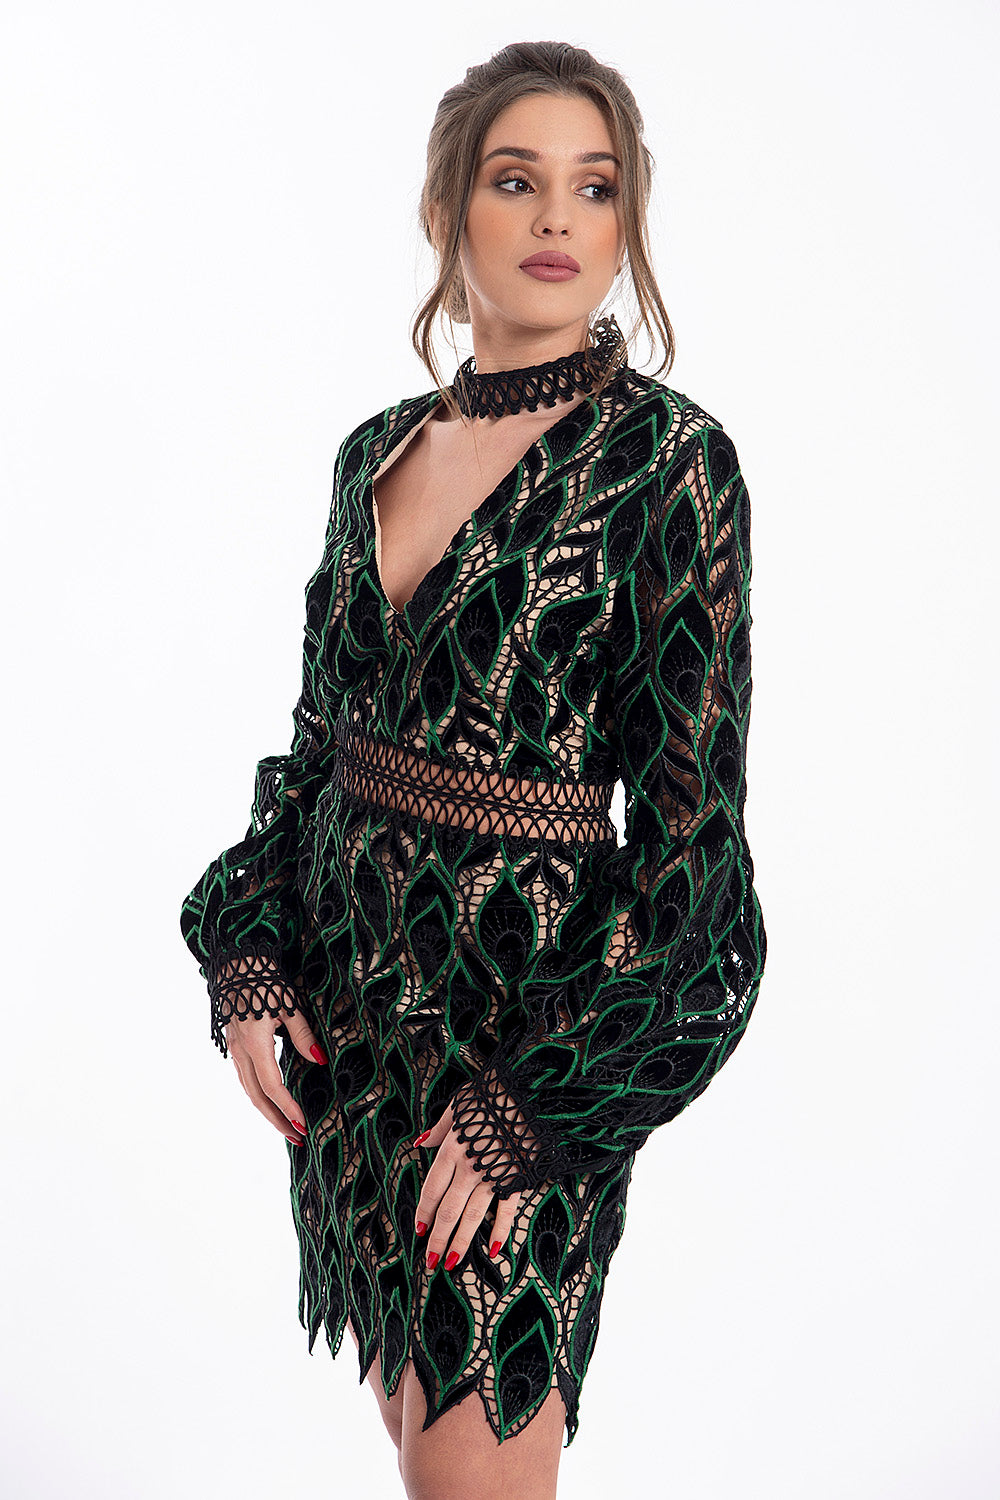 True Decadance full lace mini dress with choker detail